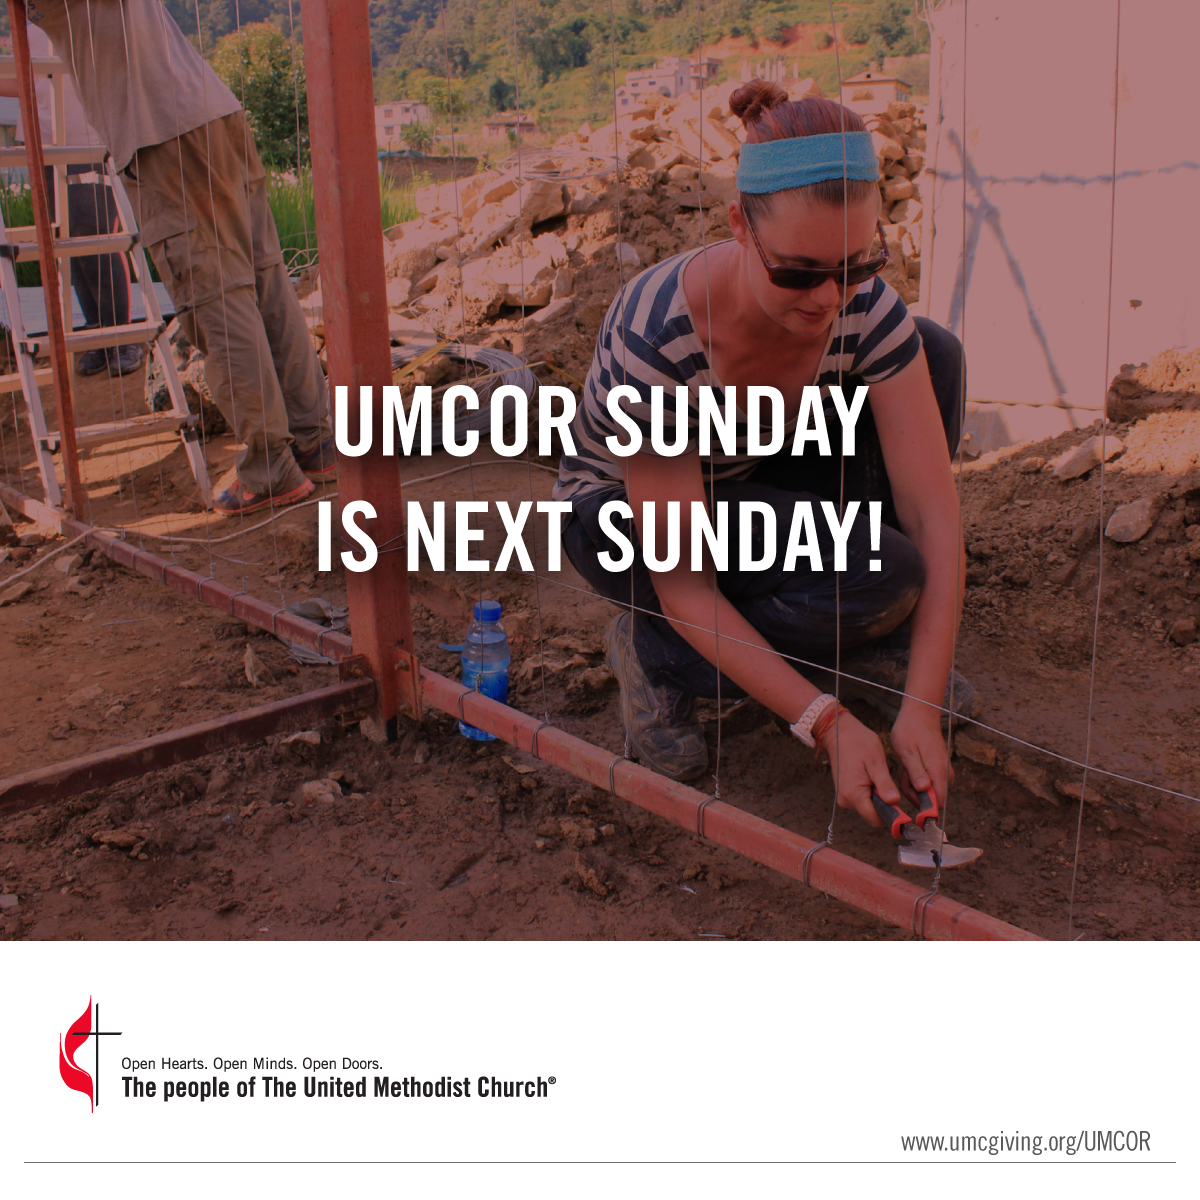 UMCOR Sunday is 2 weeks away